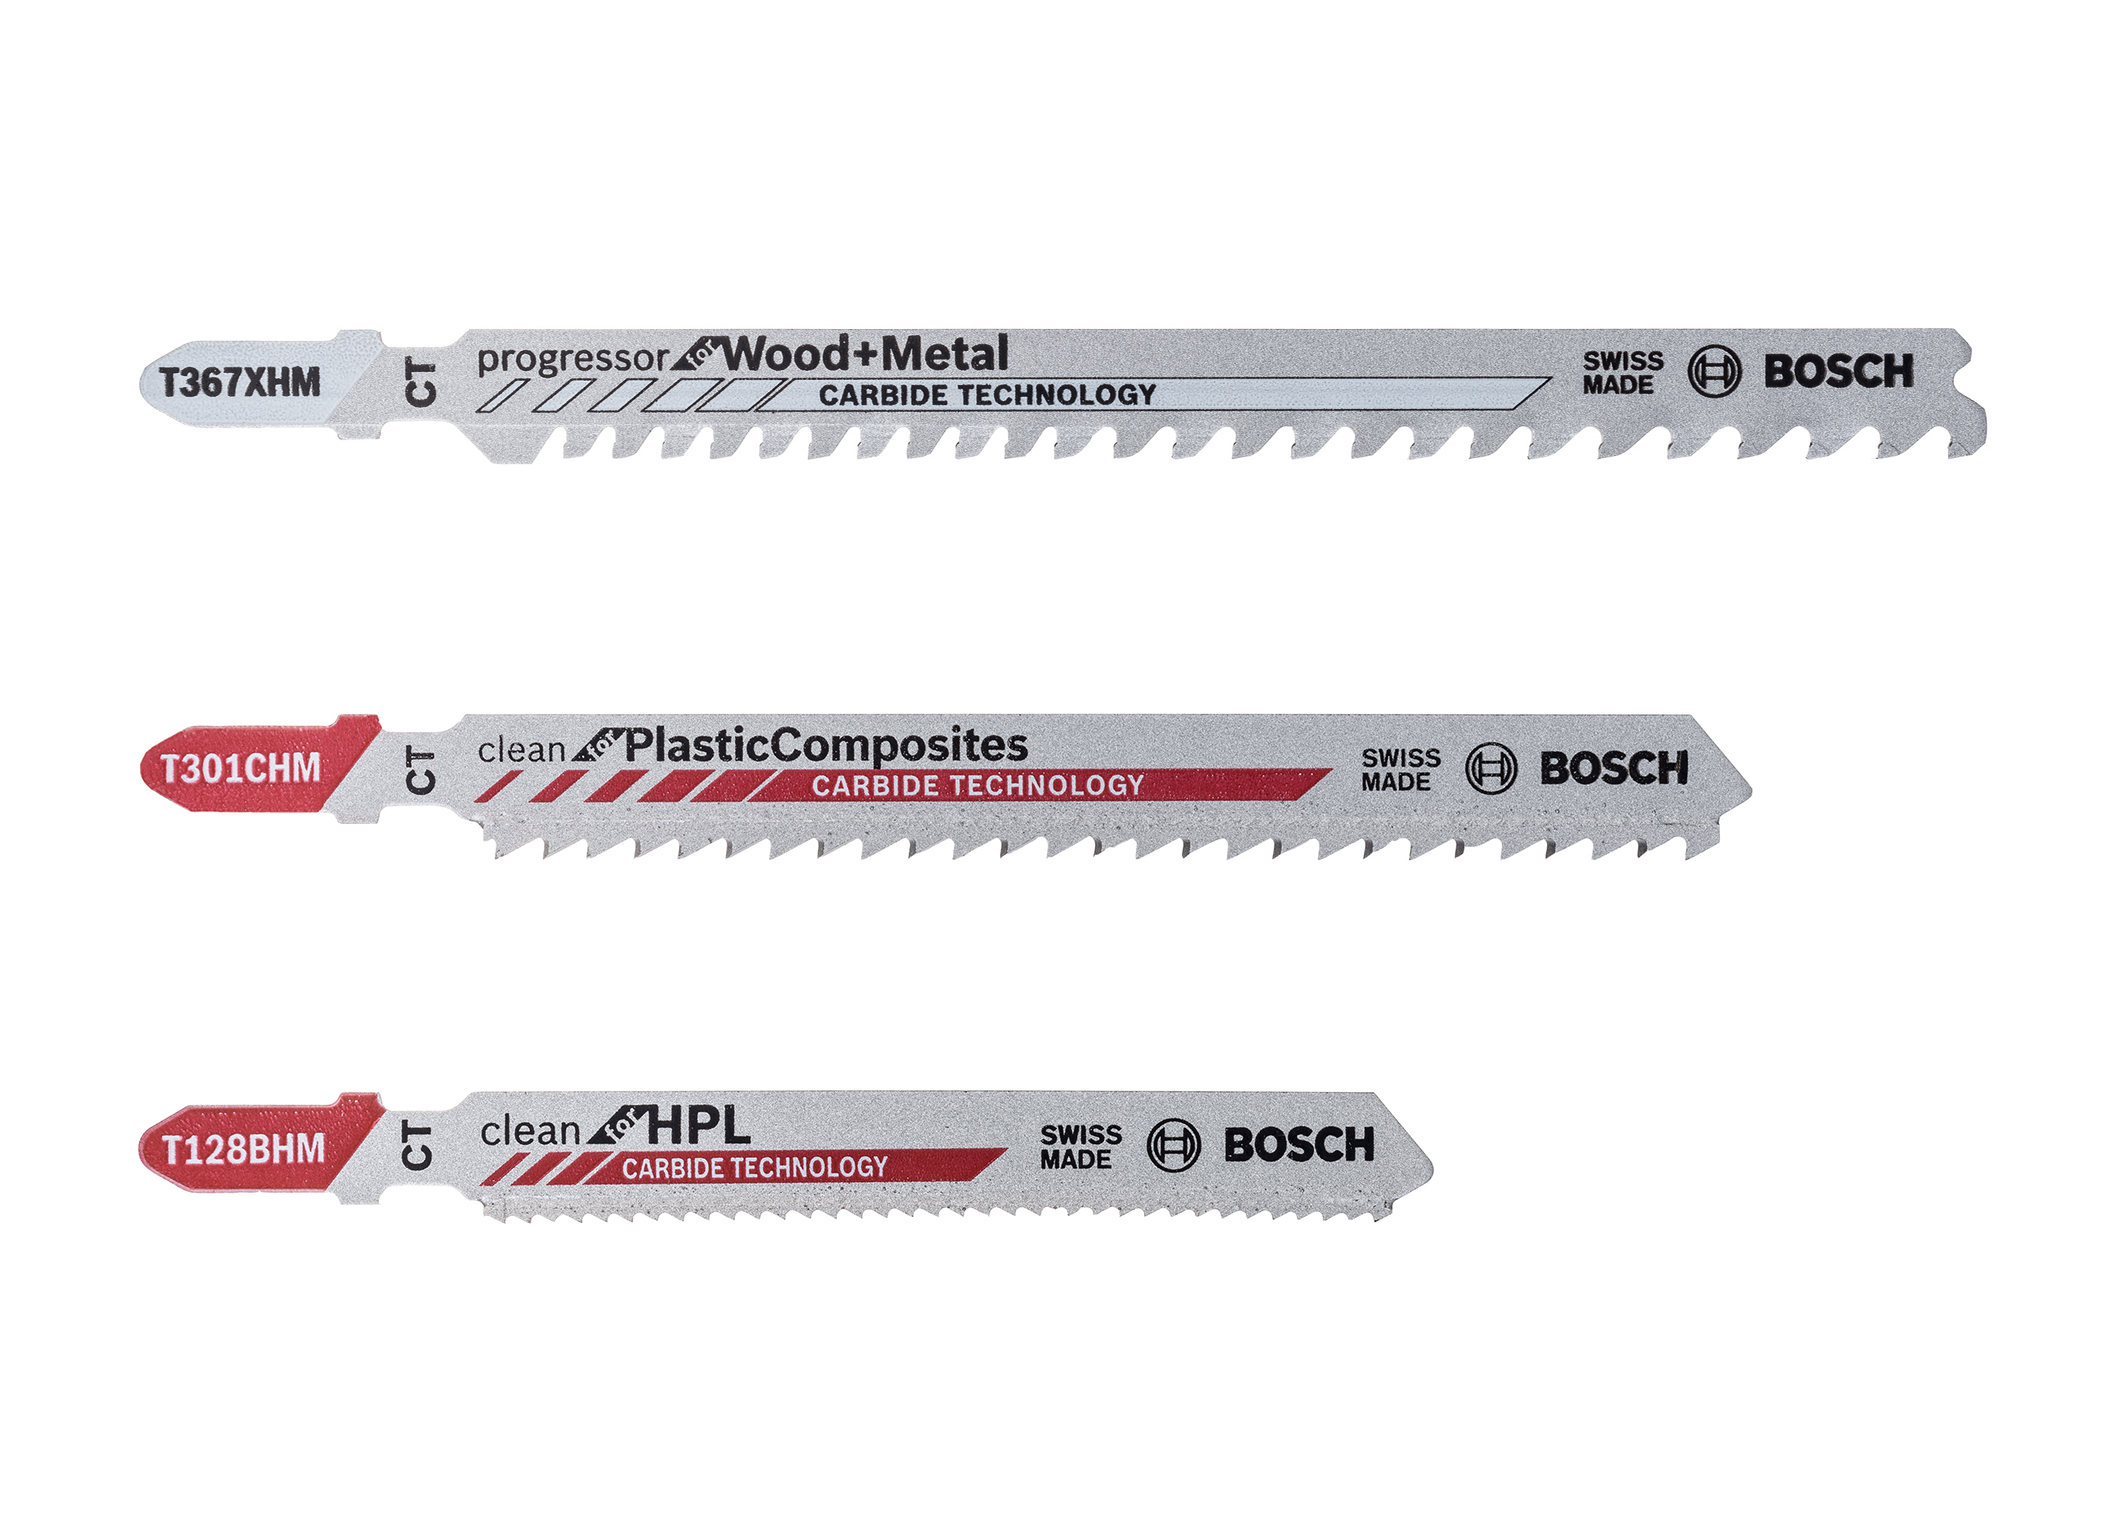 For an even wider range of applications new bosch jigsaw blades for an even wider range of applications new bosch jigsaw blades with carbide technology greentooth Images